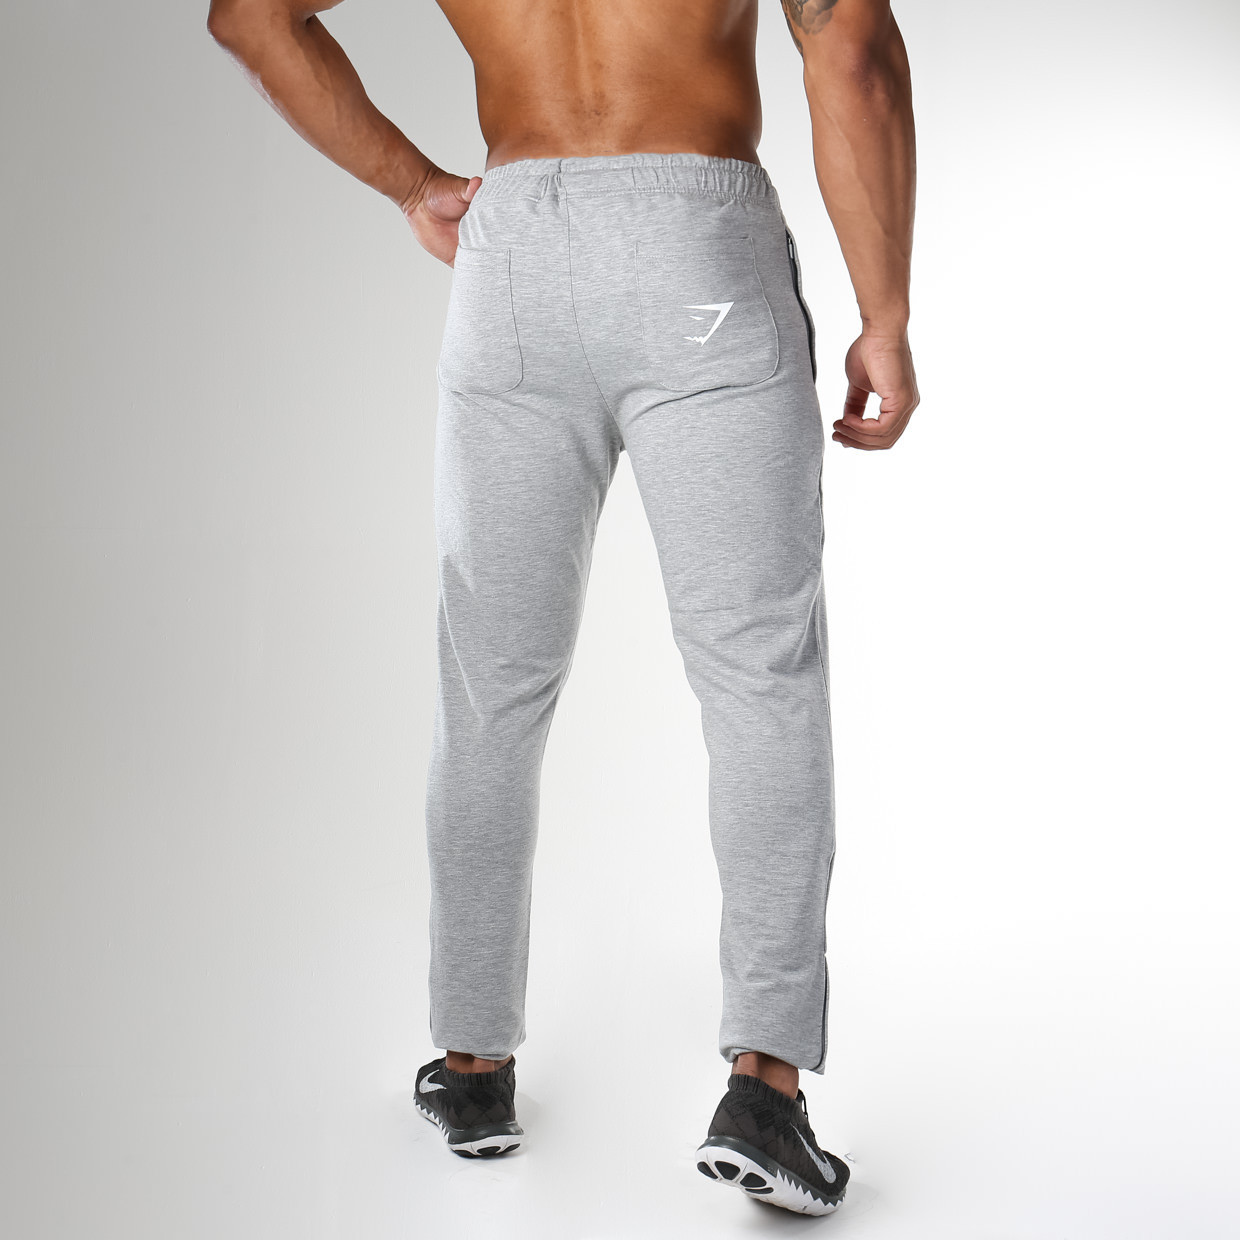 From behind: Gymshark Fit Tapered Bottoms in Grey